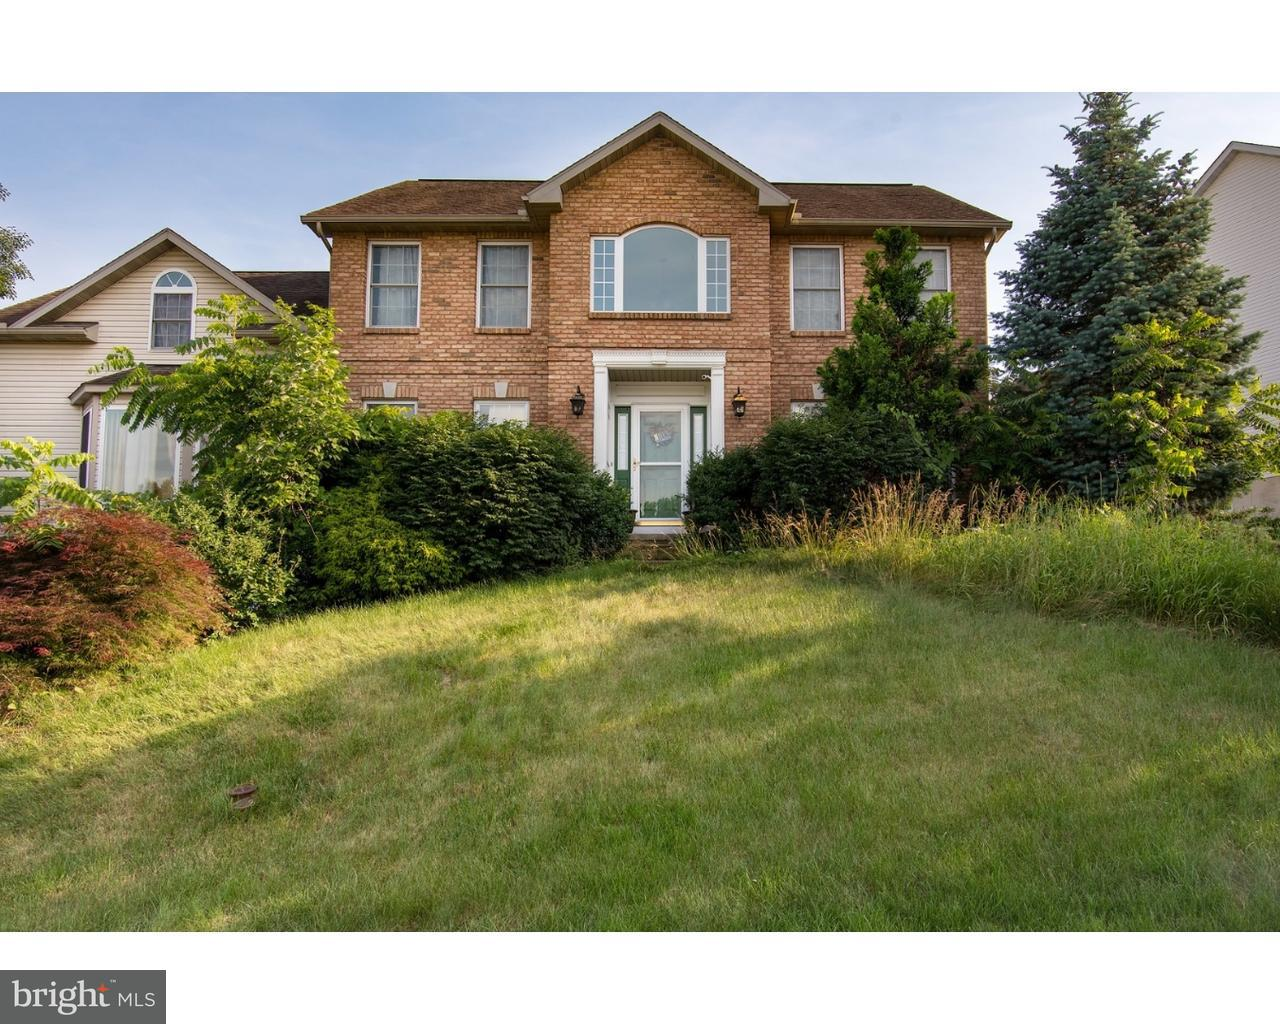 56 SYCAMORE DR, READING - Listed at $259,000, READING